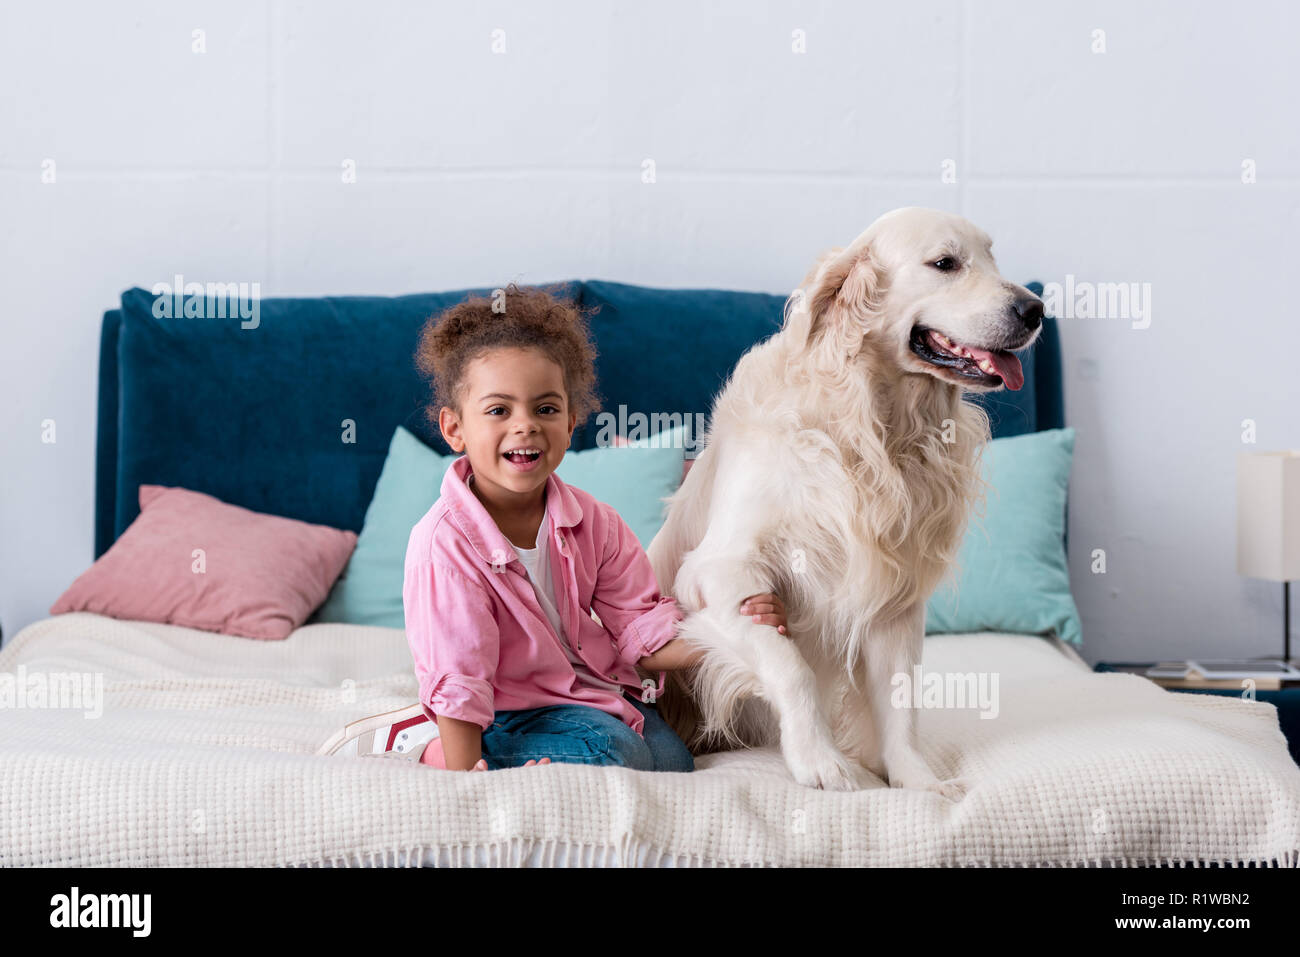 Smiling african american child sitting on the bed and holding dog paw - Stock Image